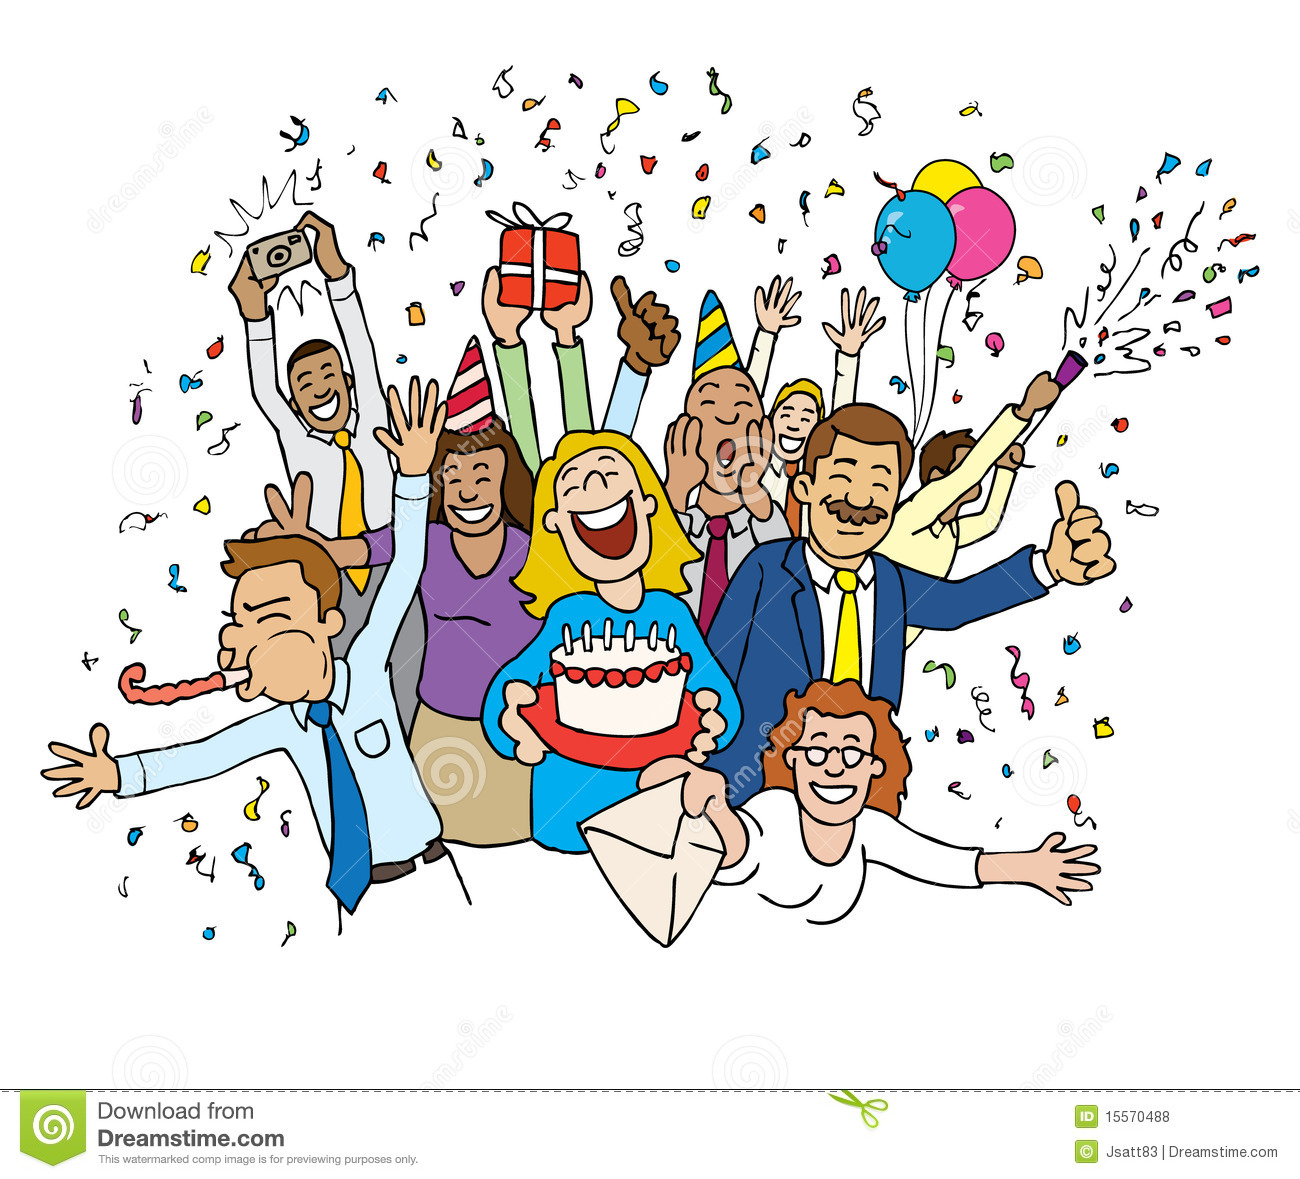 Celebration - Cartoon Office Celebration Royalty Free Stock Photos